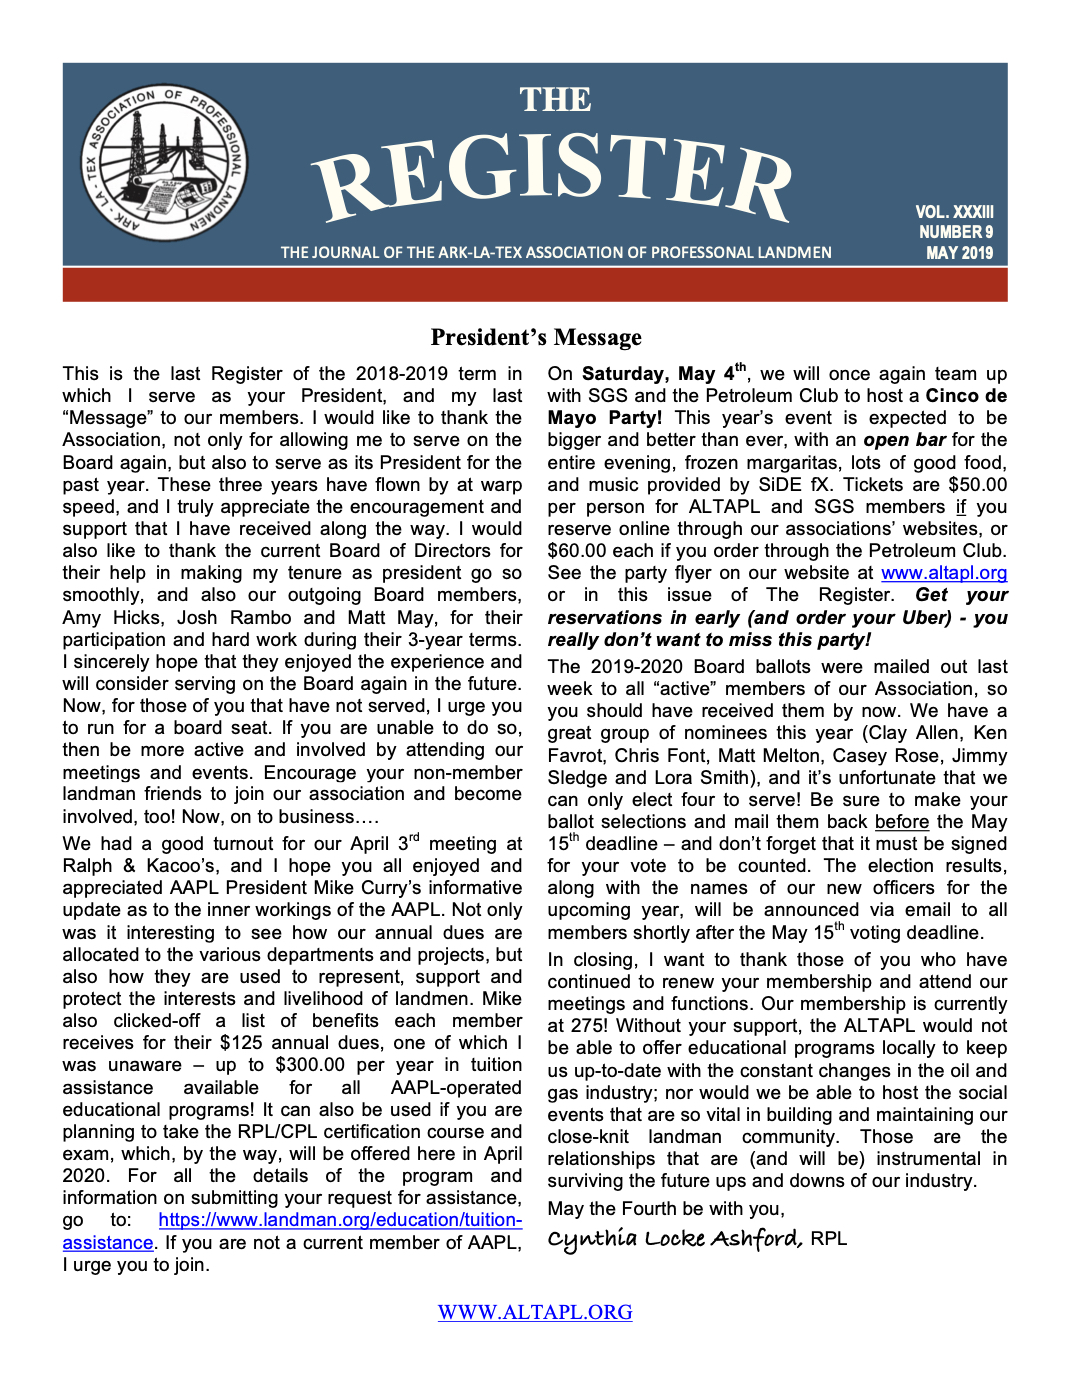 ALTAPL Register May 2019 Page 1.jpg